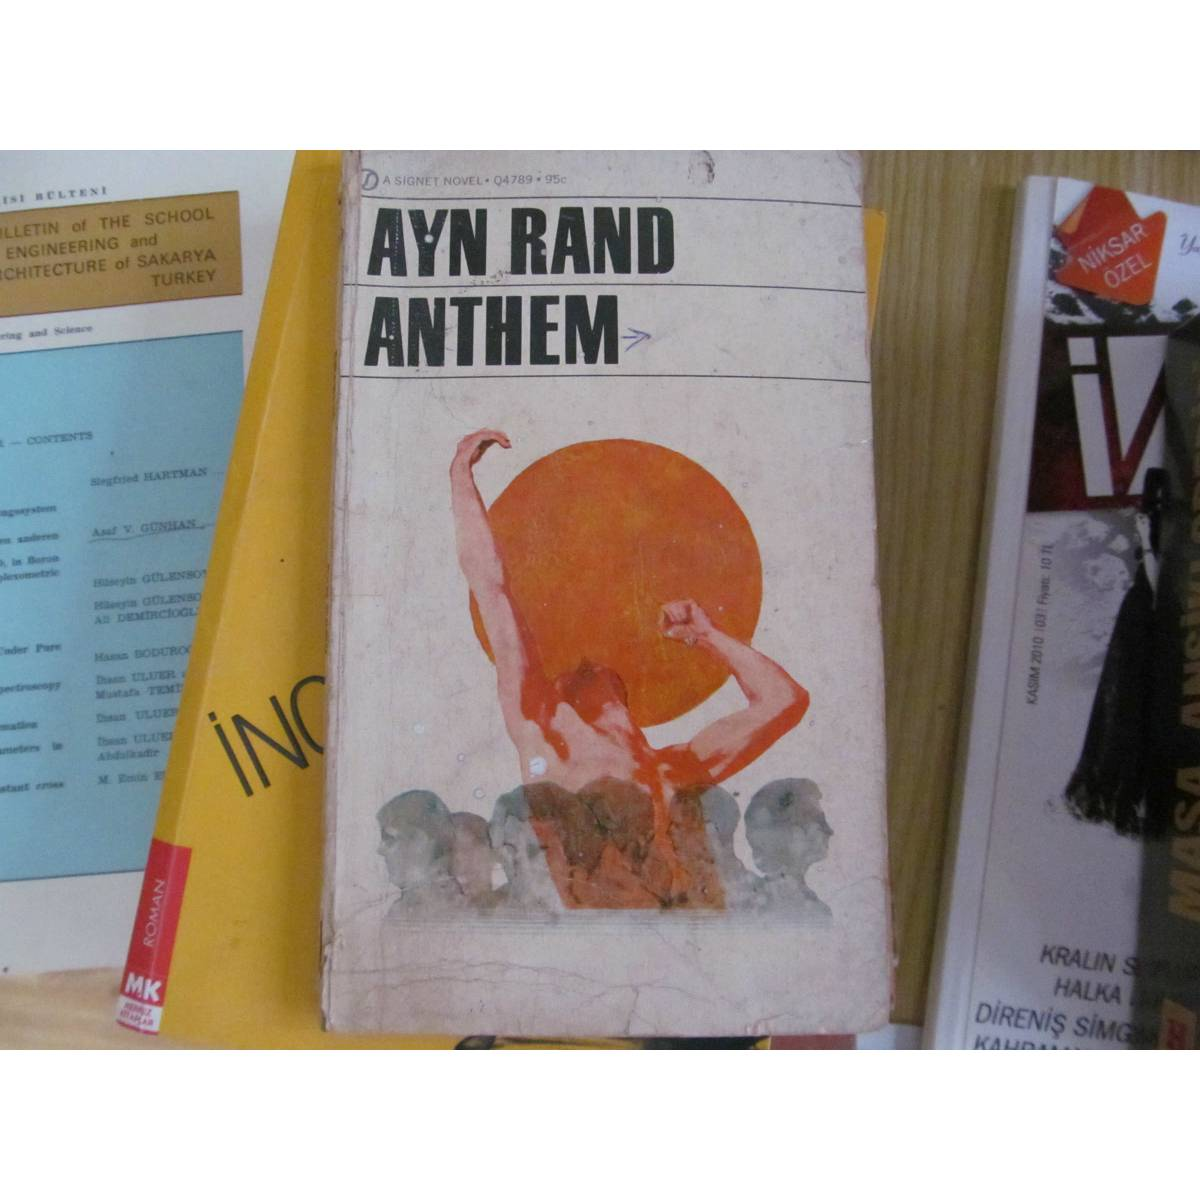 ayn rand anthem essay winners Ayn rand institute announces winners of the 2016 anthem and the fountainhead worldwide essay contests for the first time in 30 years, both winners are from outside.